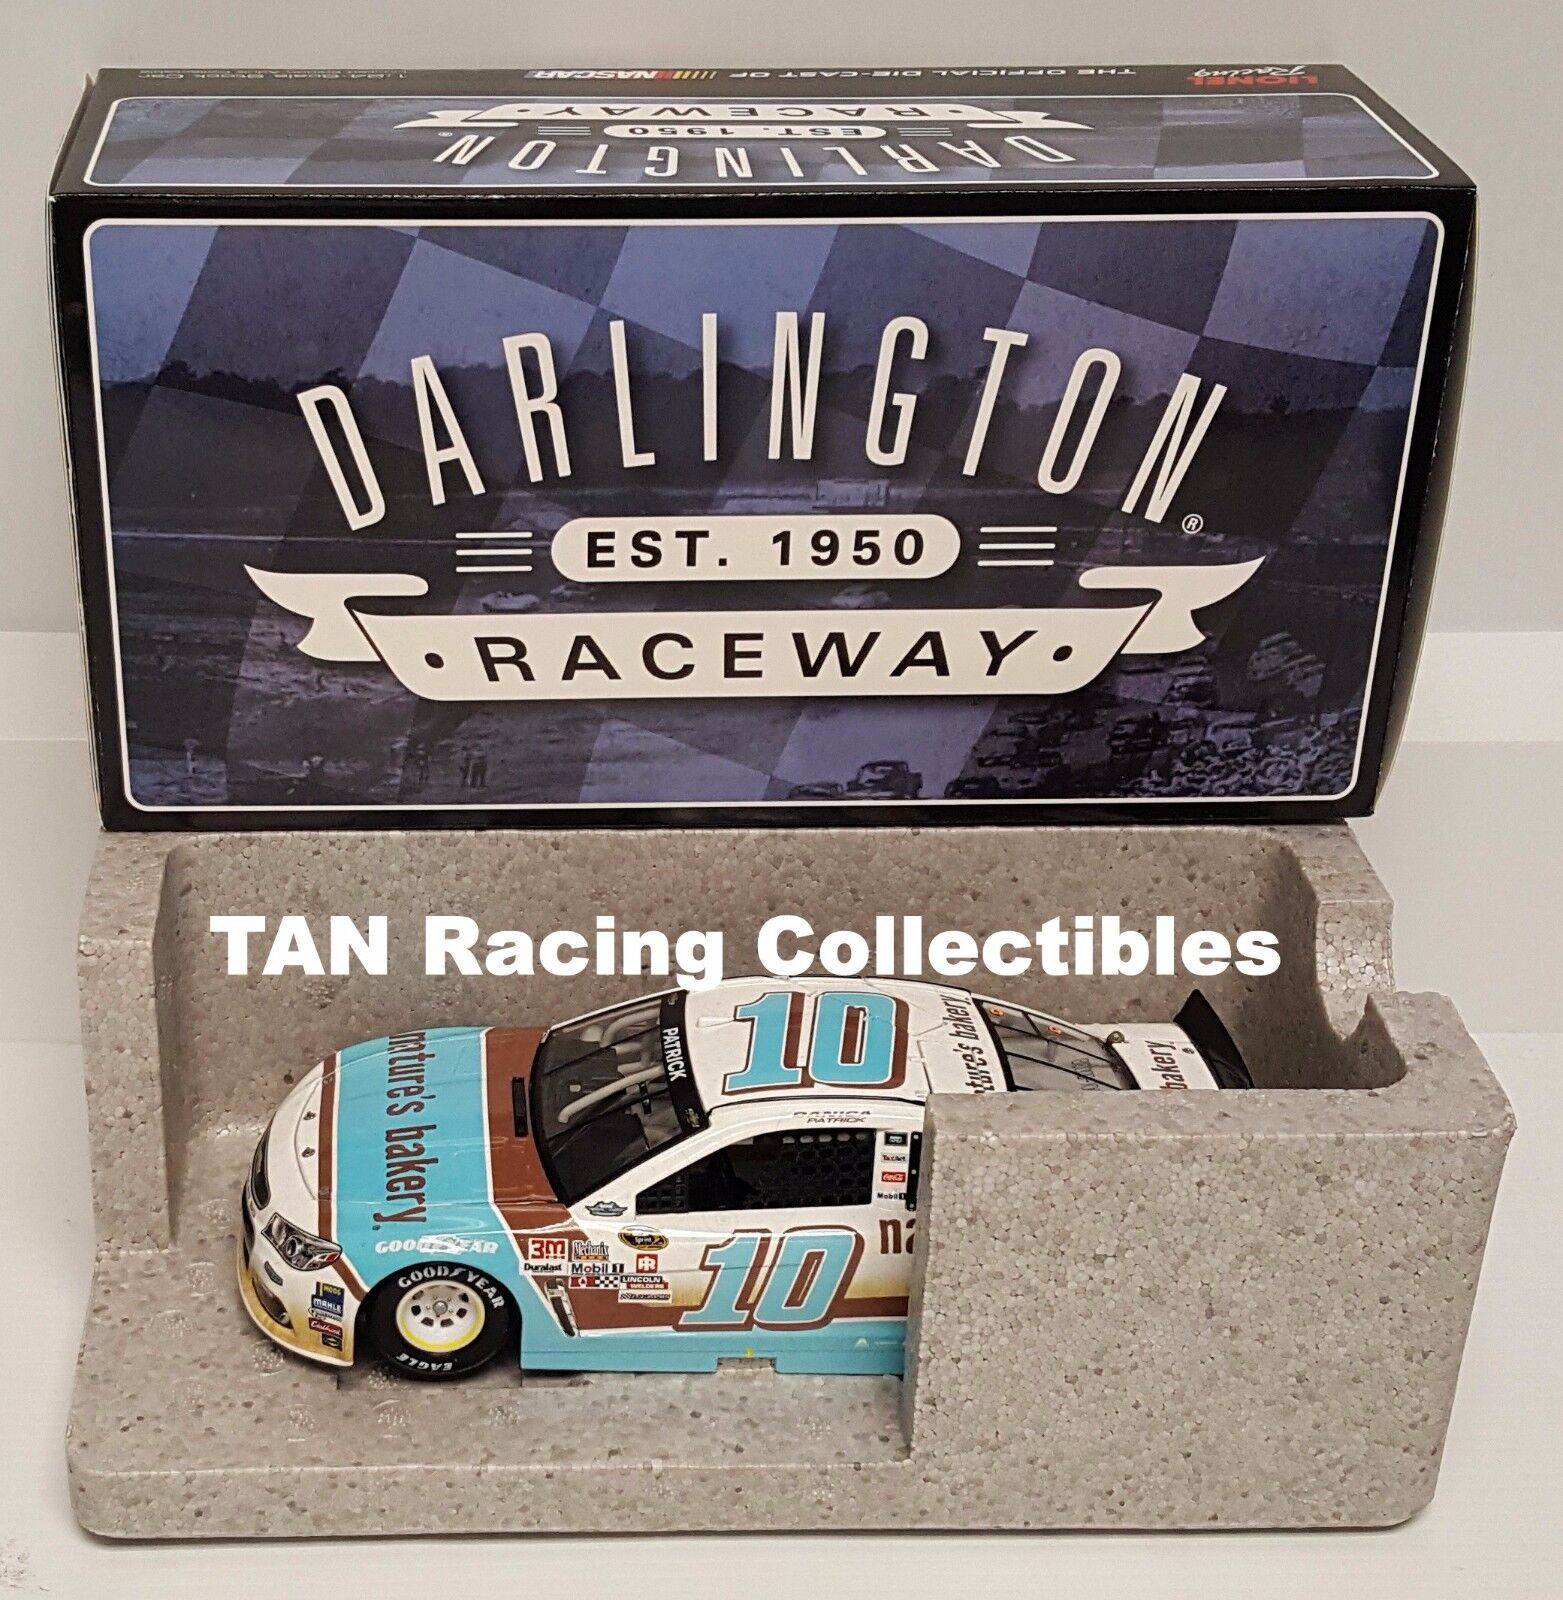 Danica Patrick 2016 Lionel Nature's panadería Darlington Throwback 1 24 Gratis